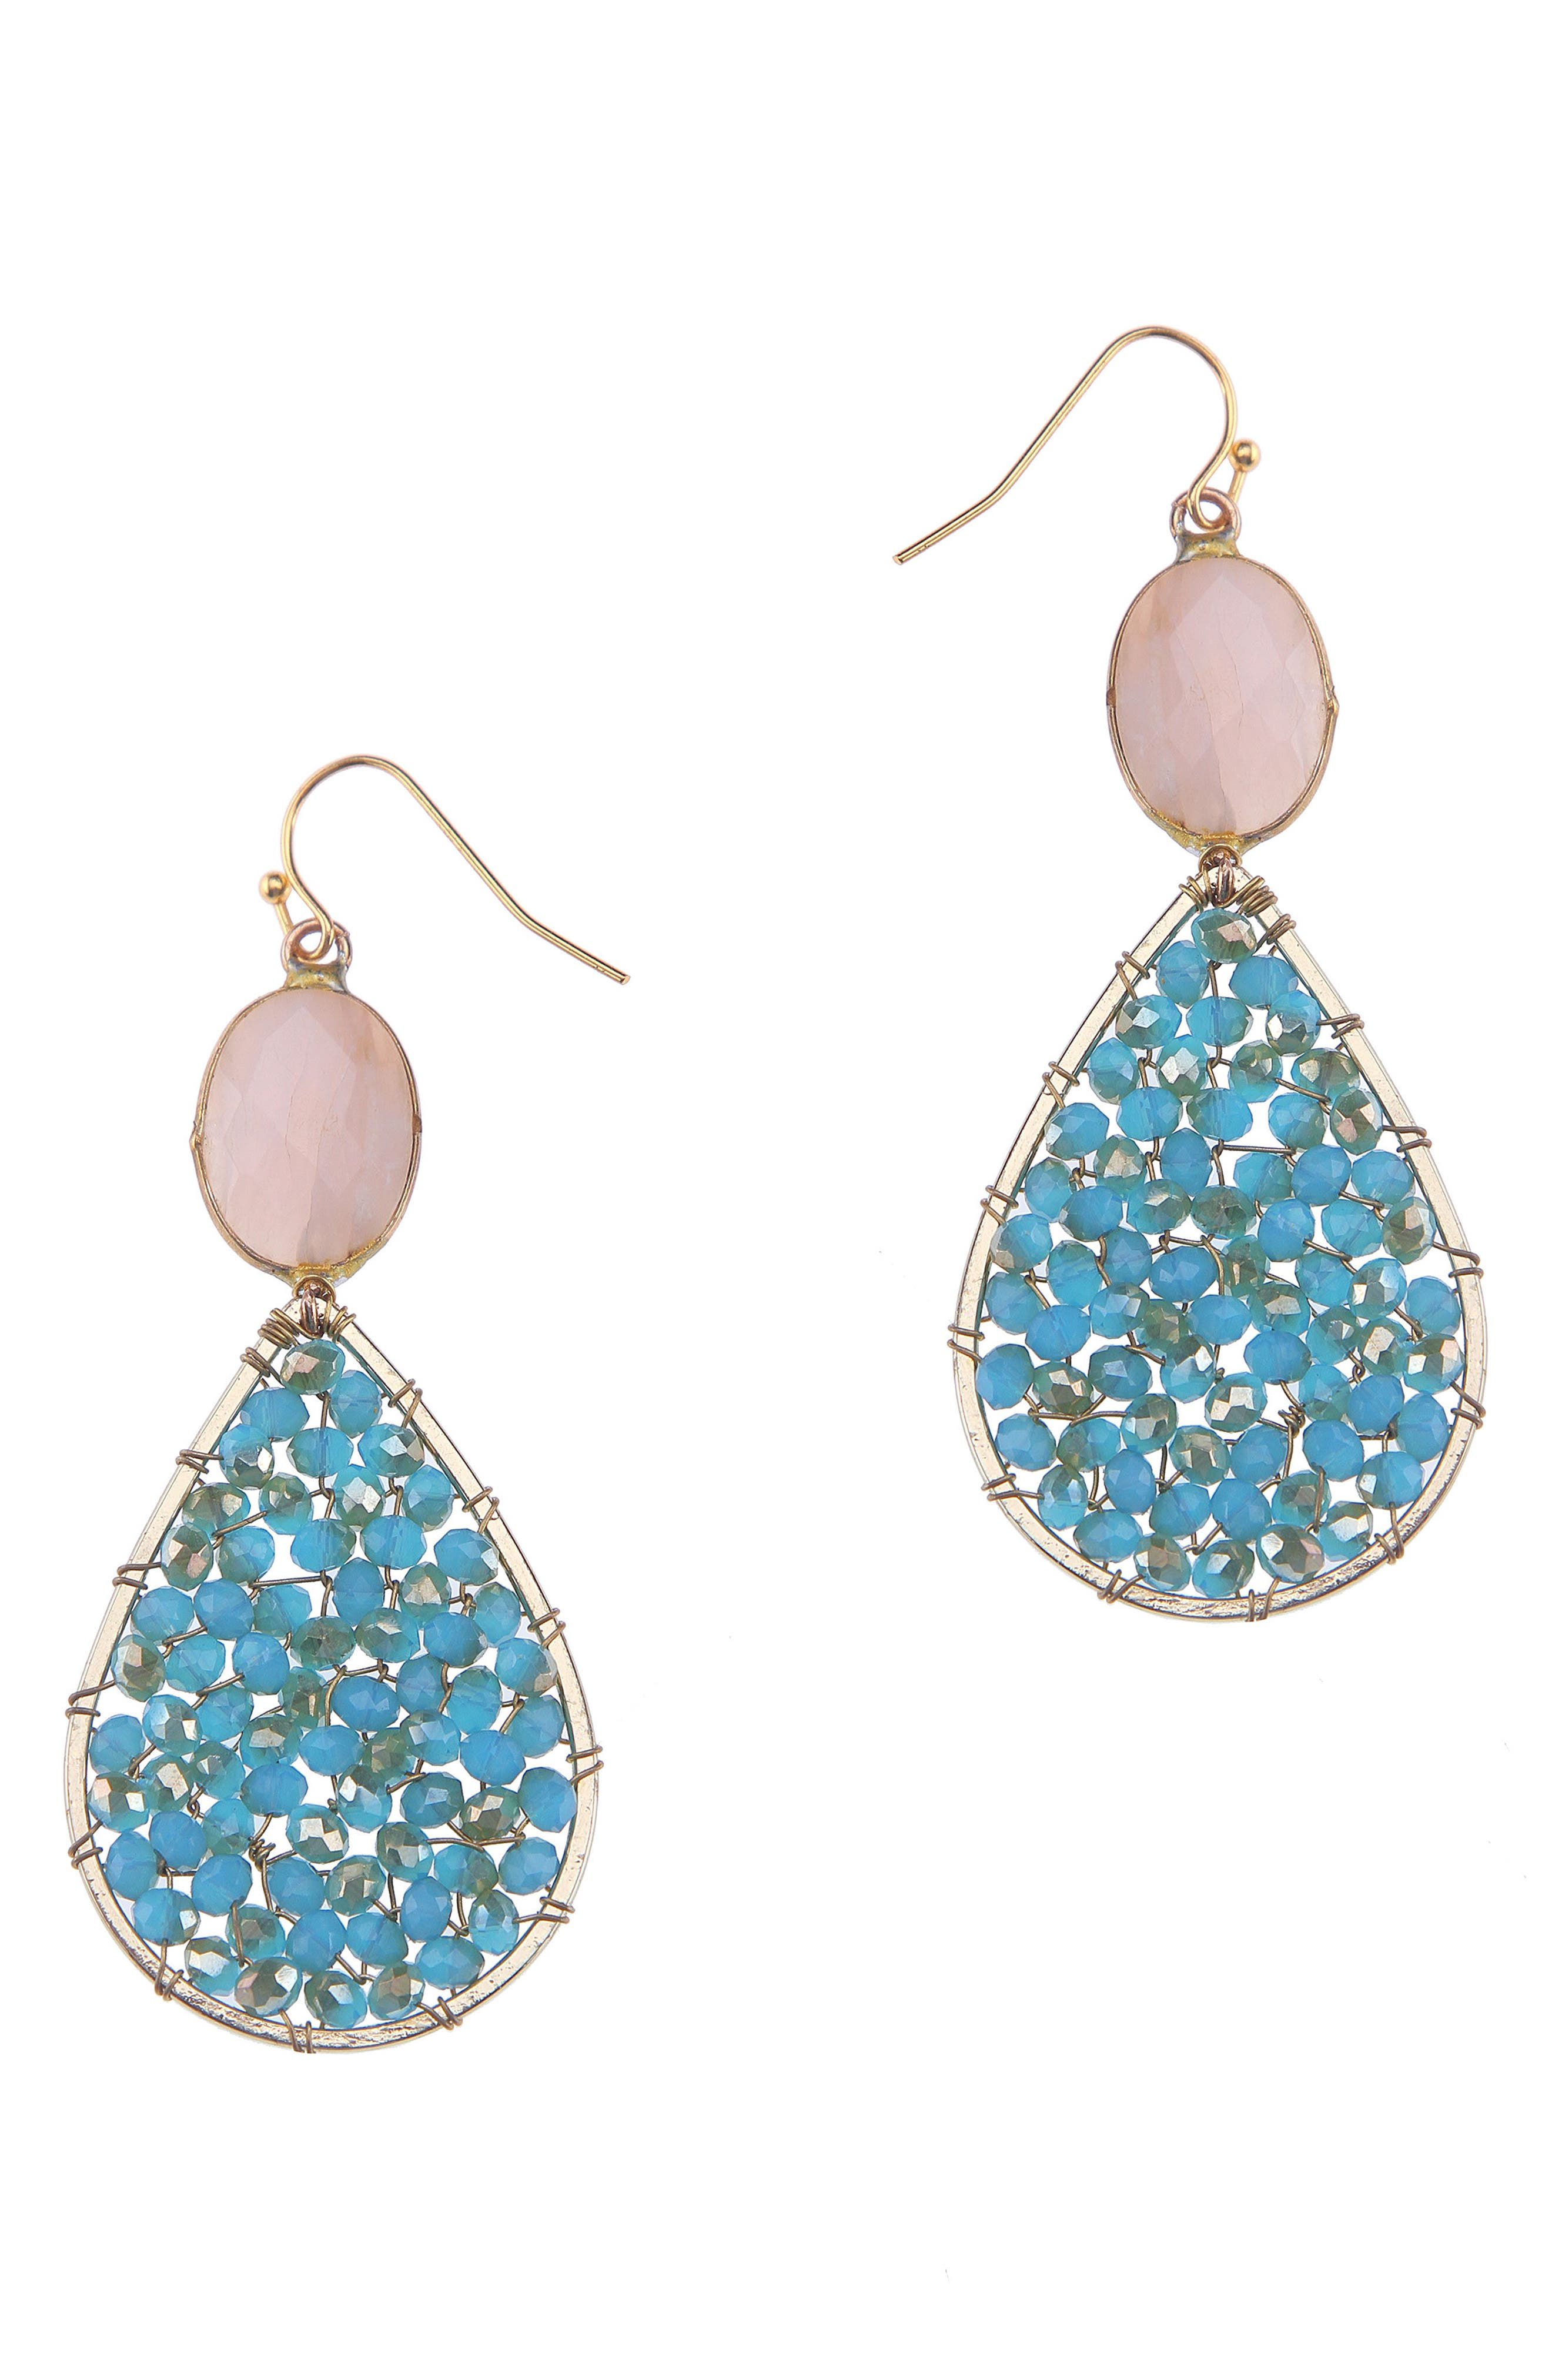 Crystal Teardrop Earrings,                             Main thumbnail 1, color,                             Aqua